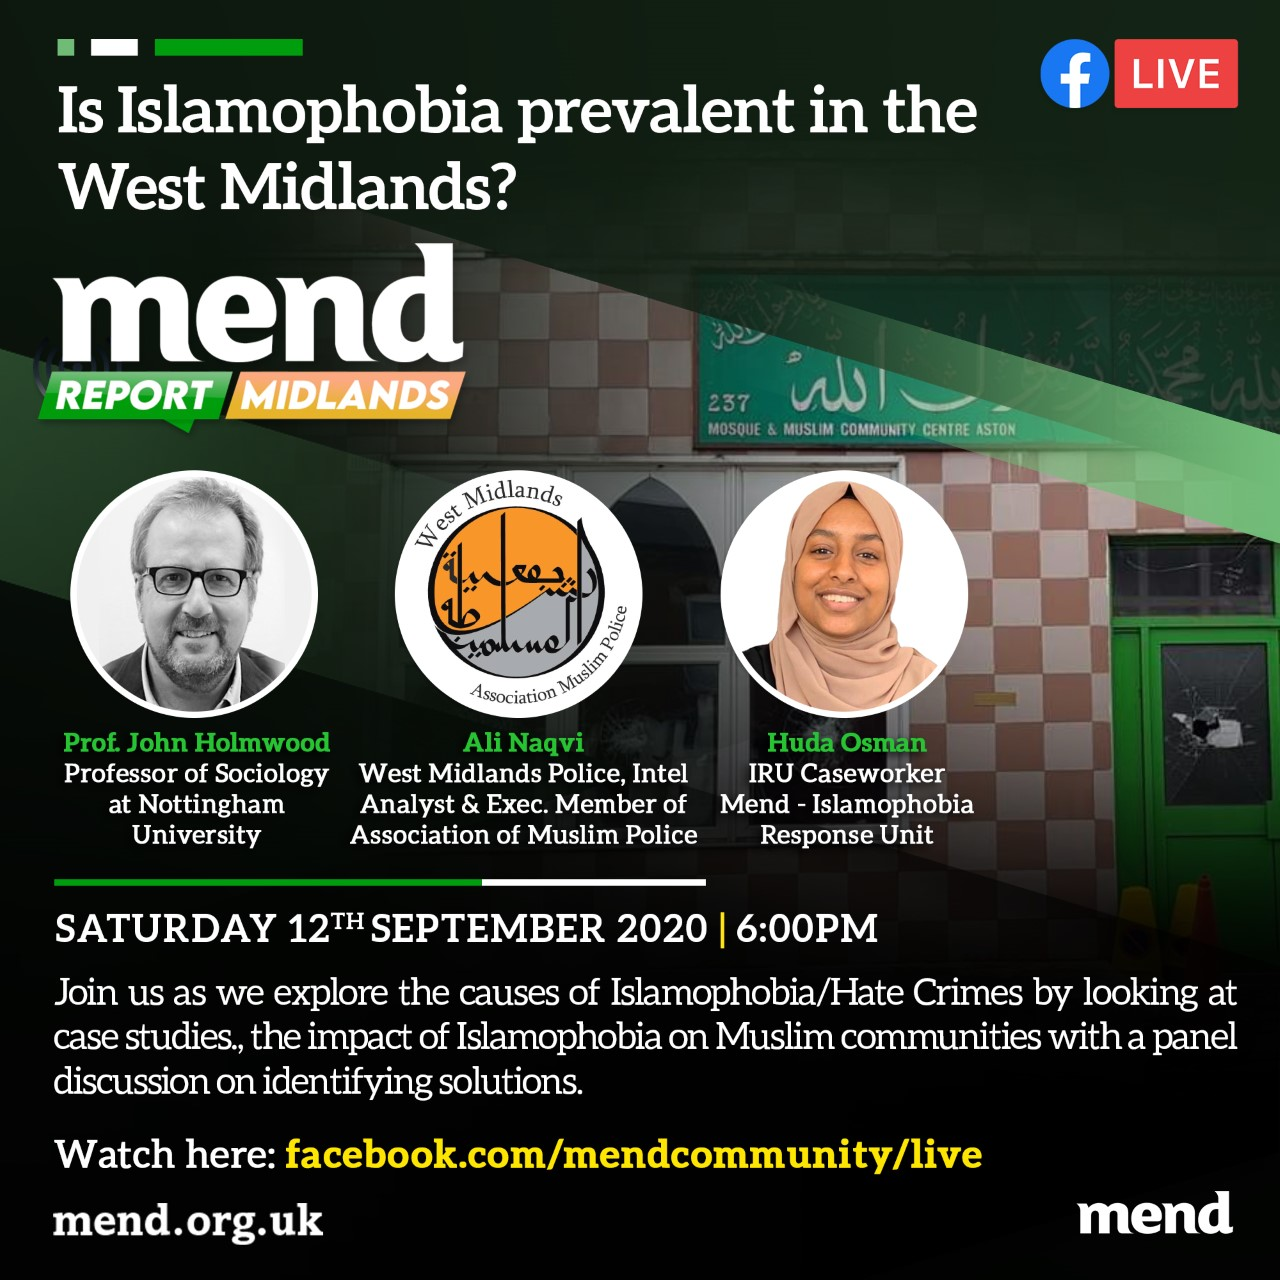 MEND report Midlands: Is Islamophobia prevalent in the West Midlands?